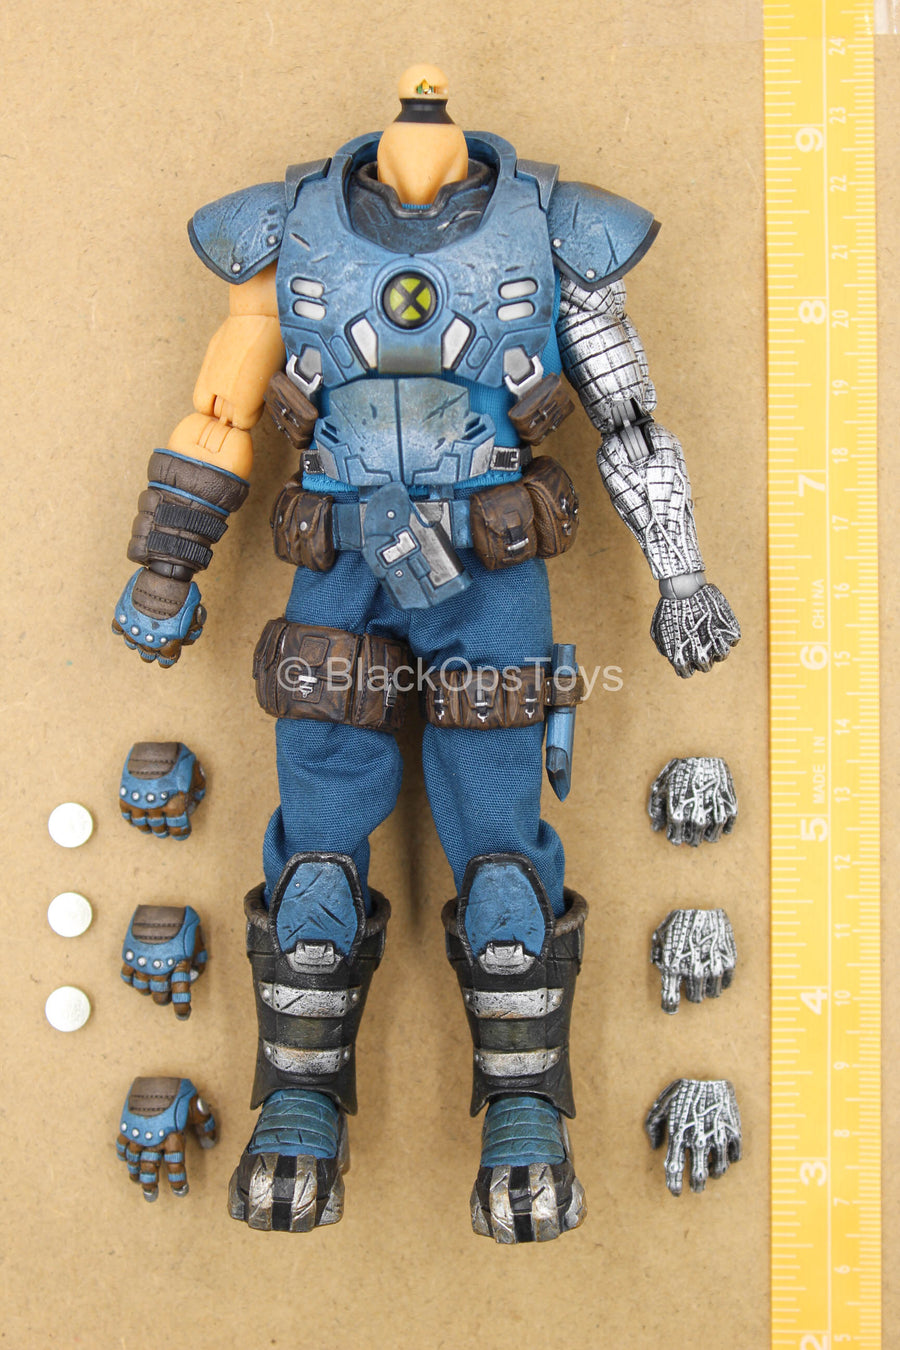 1/12 - Cable - Male Base Body w/Hand Set & Light Up Armor